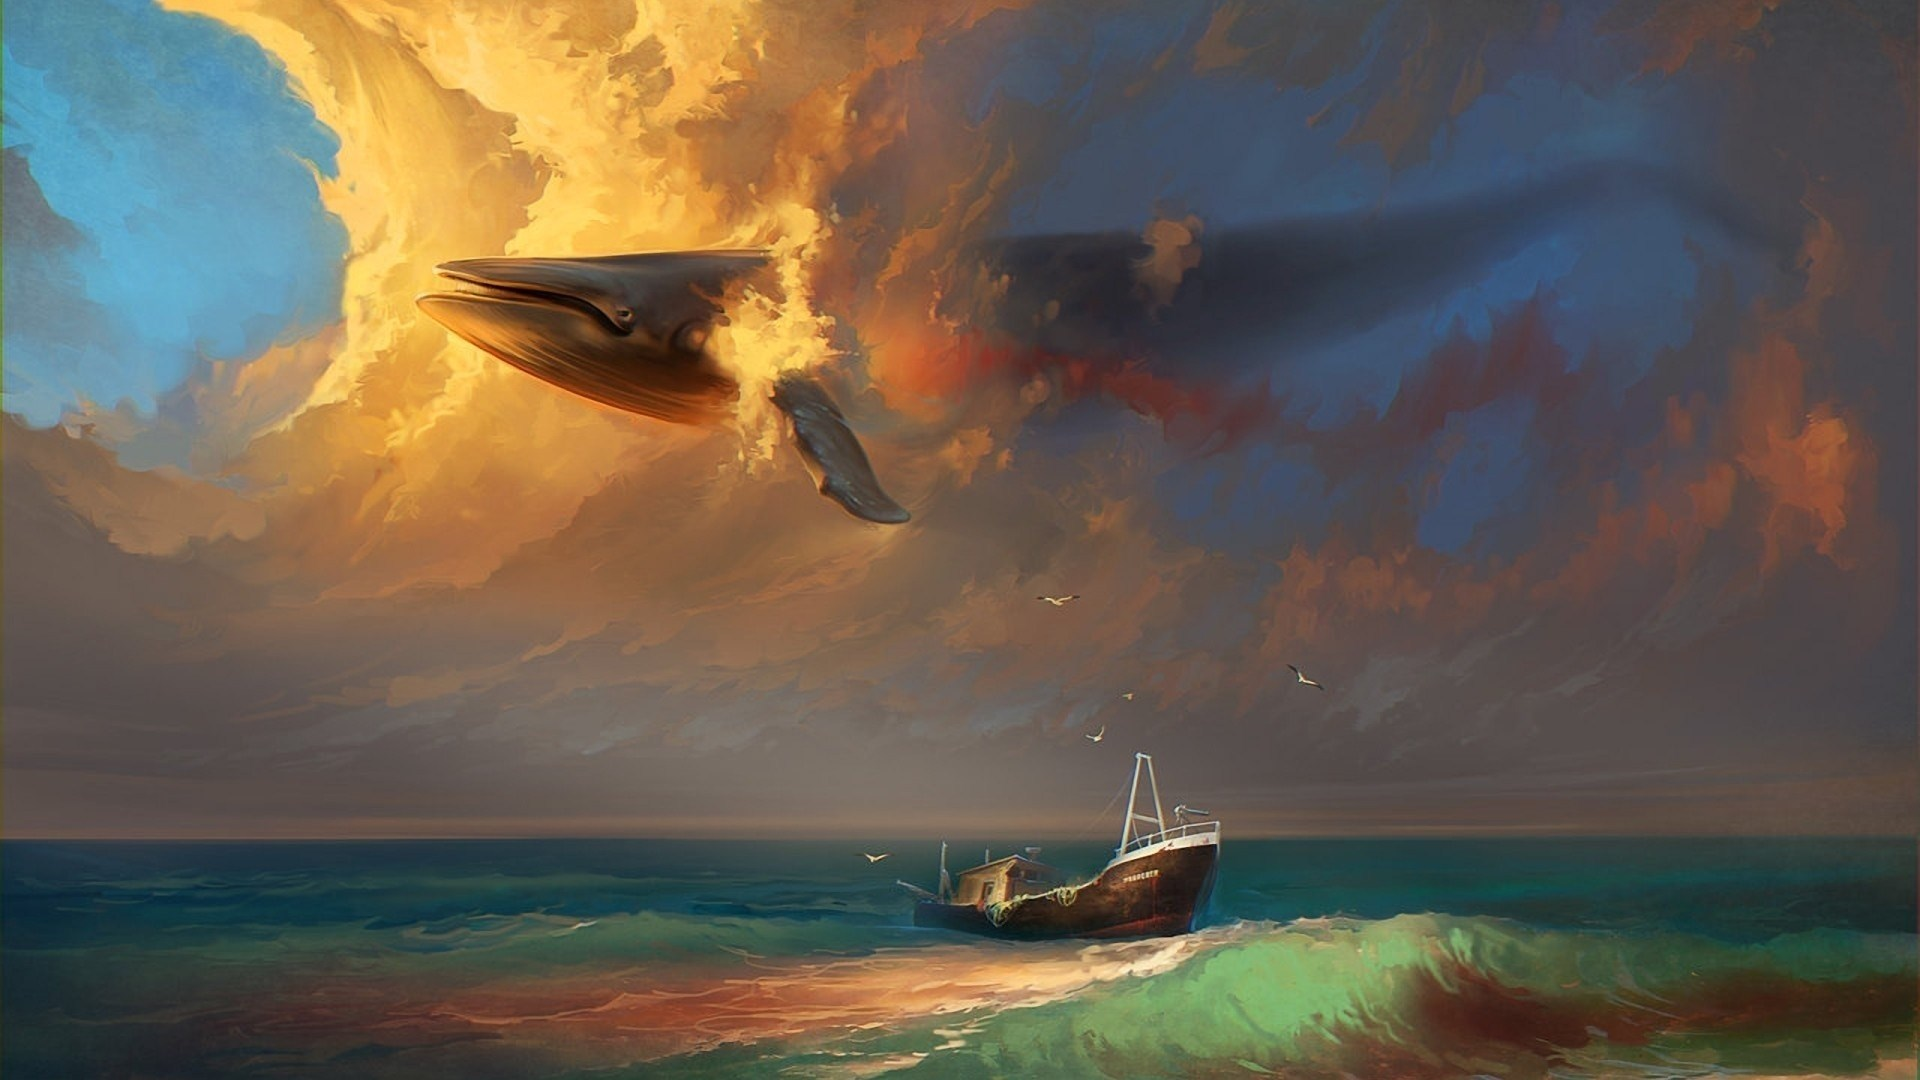 Sea Ship Birds Whale Clouds Painting